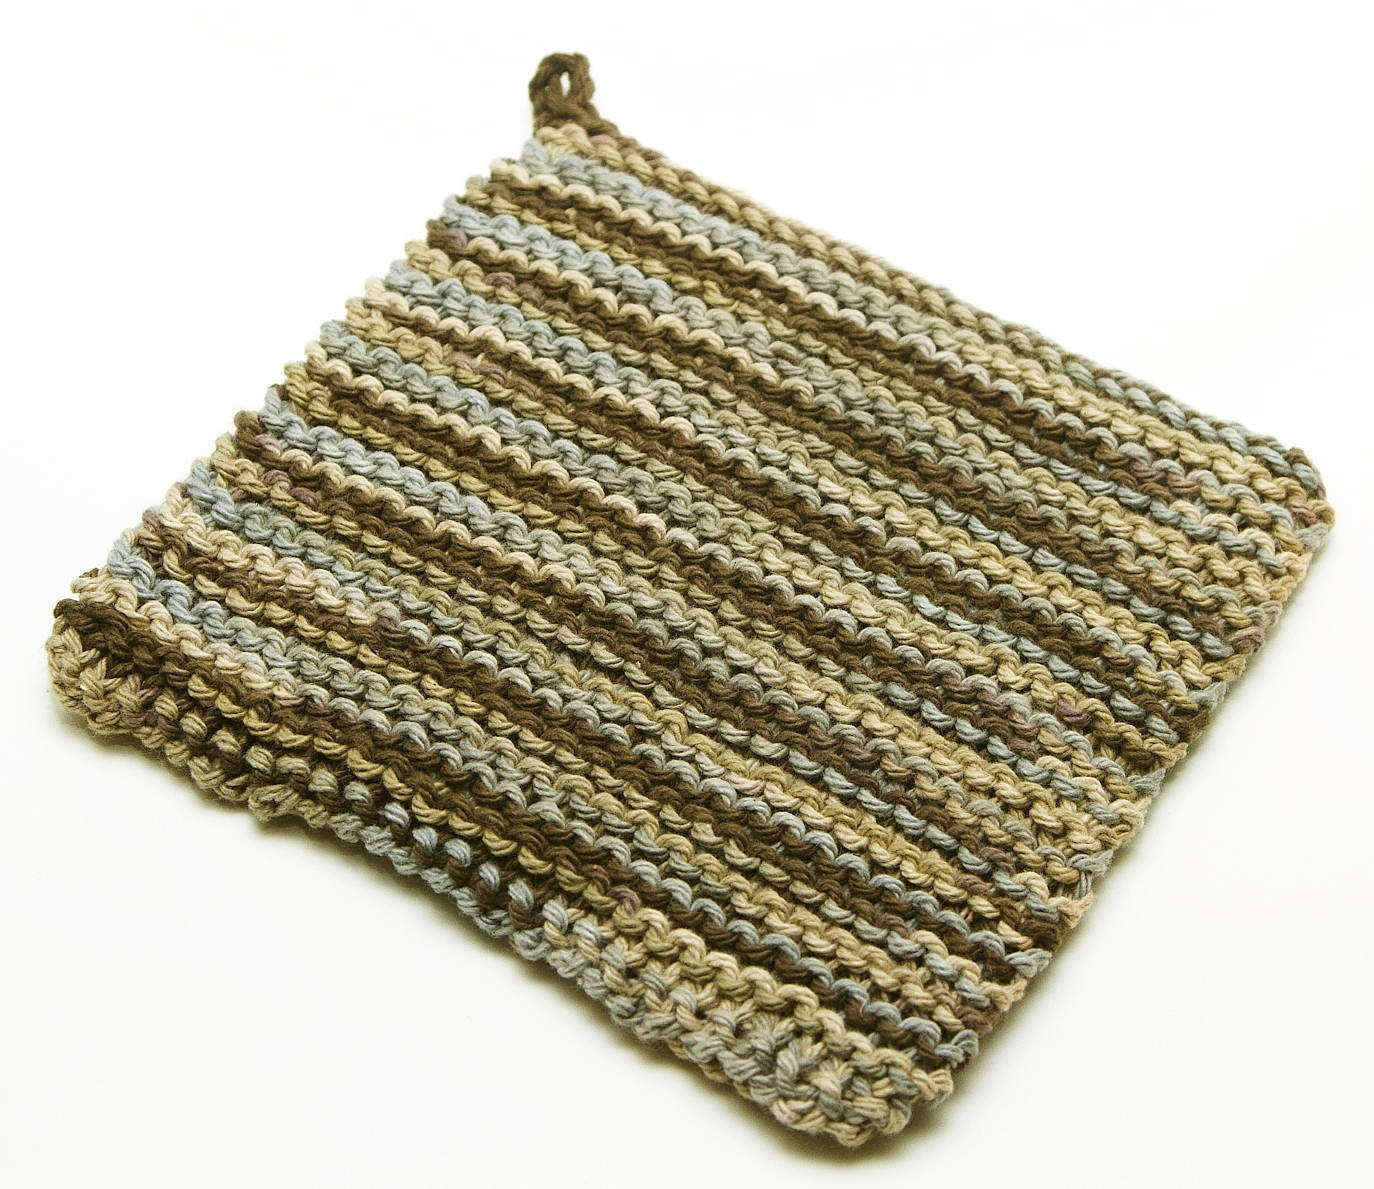 Double Knit Pot Holder Pattern Photos